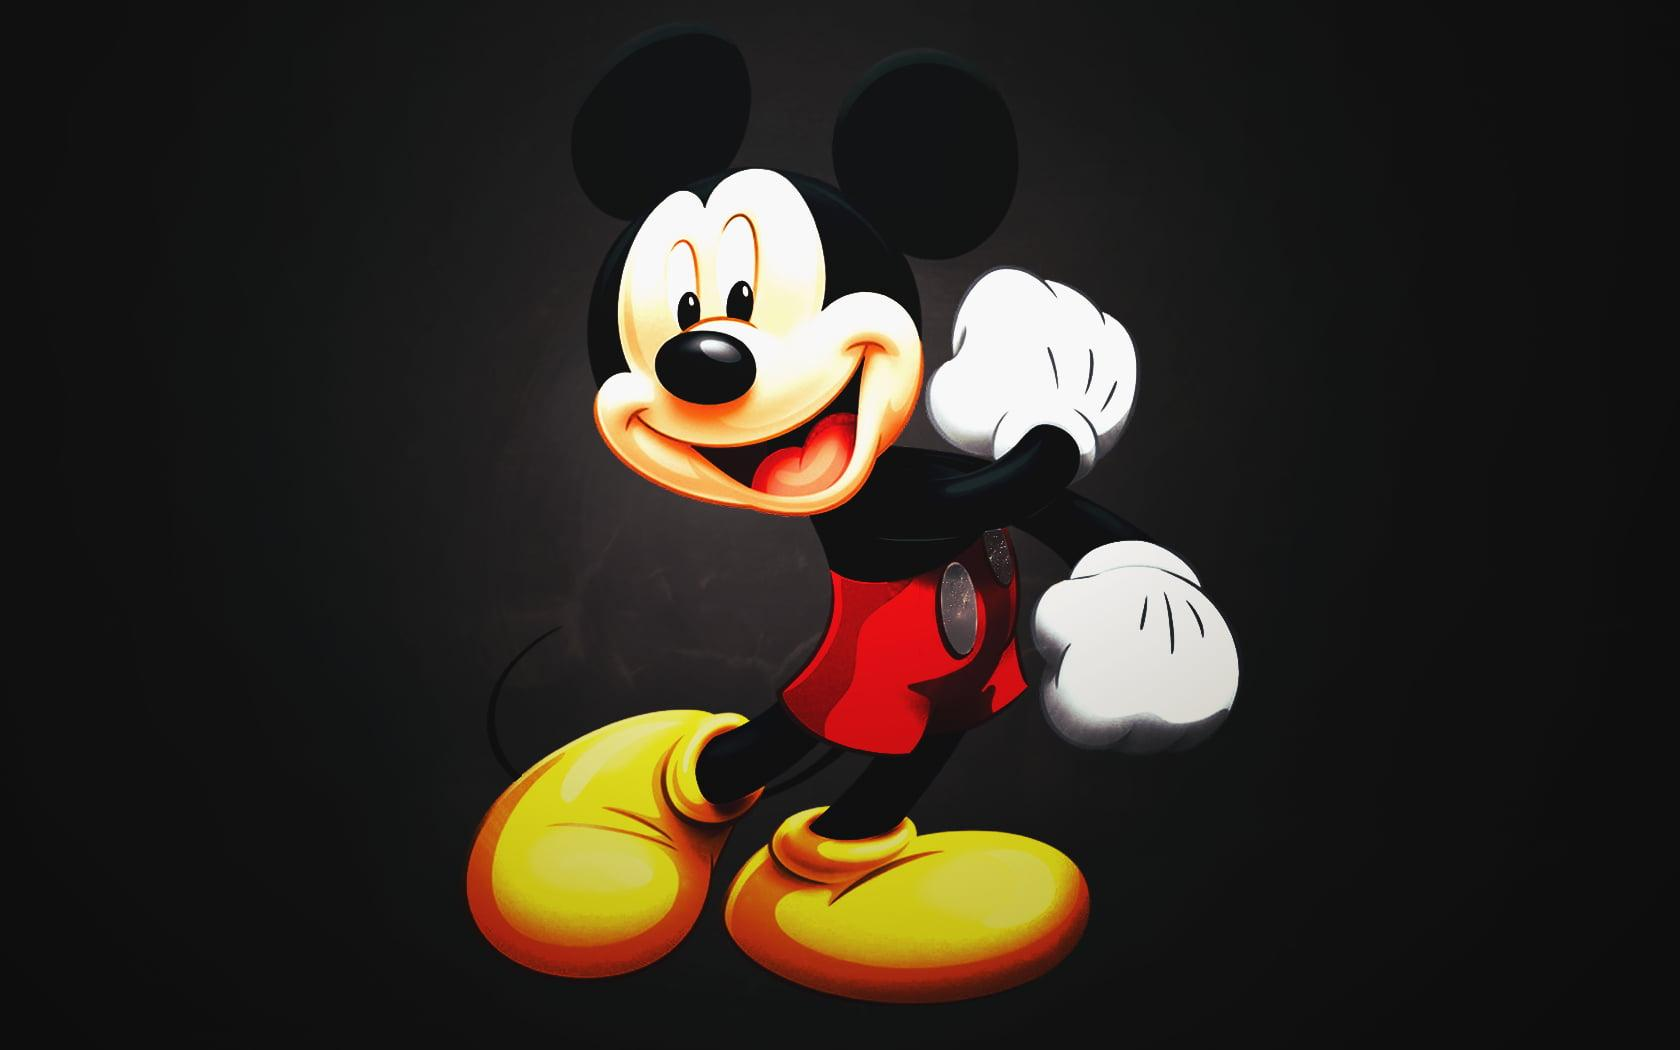 Mickey Mouse City Wallpapers - Wallpaper Cave